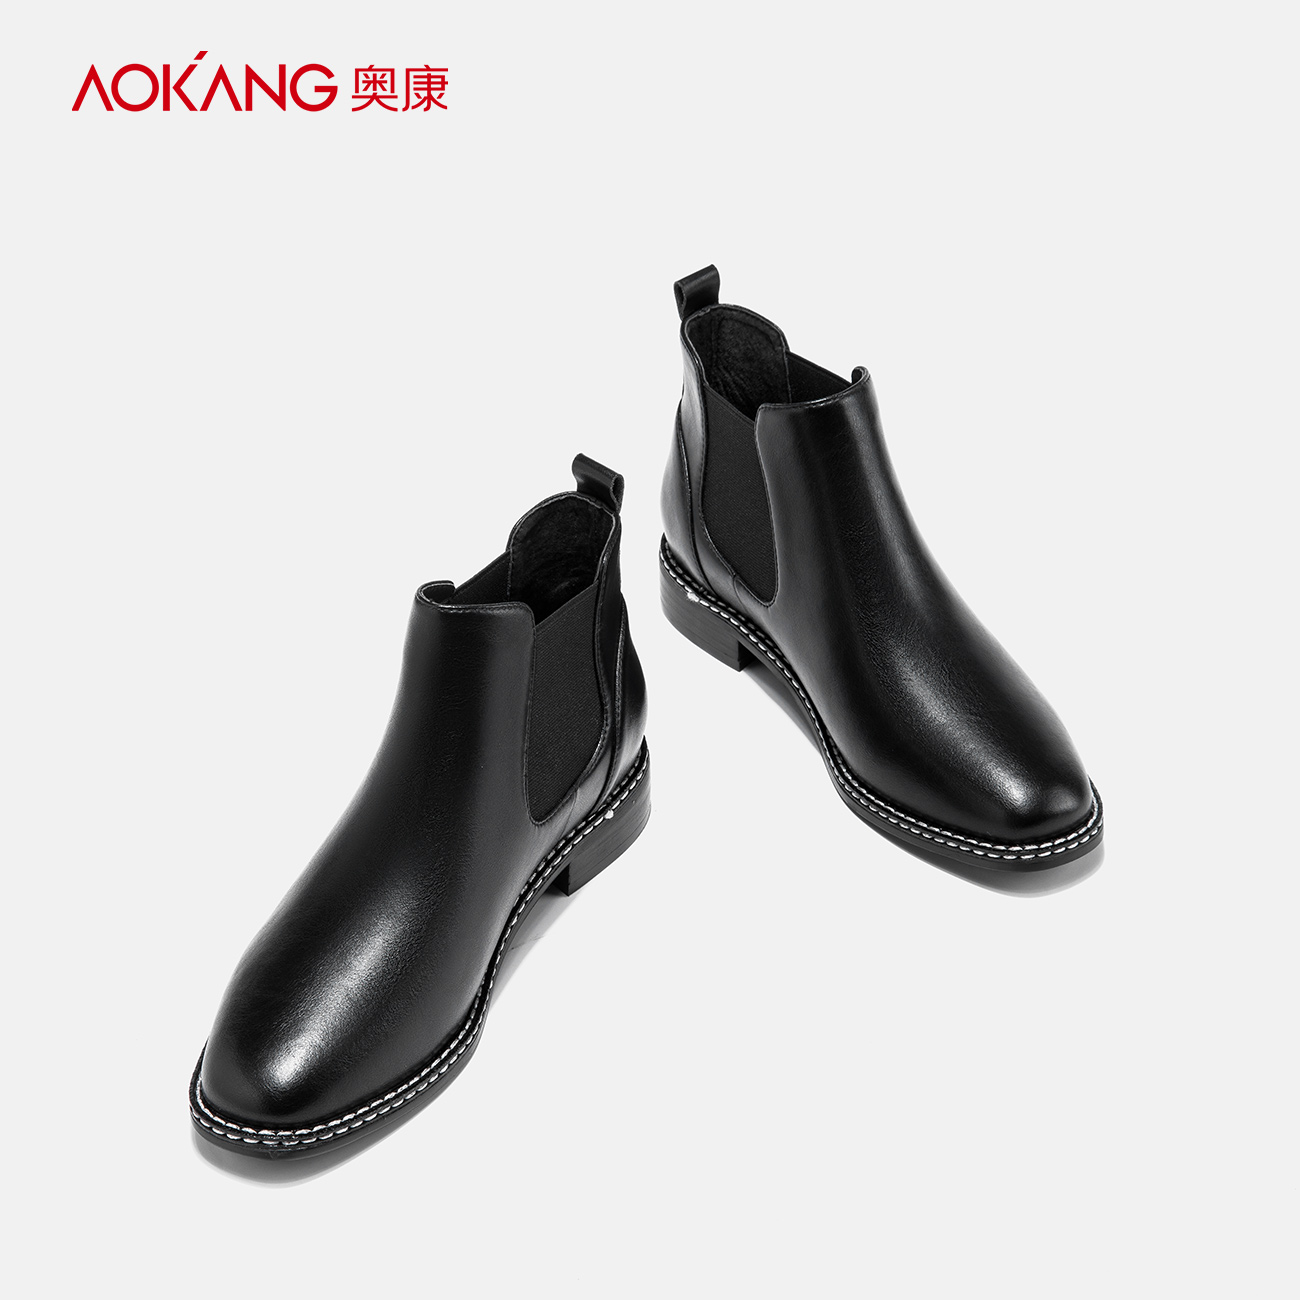 O'Con Shoes Winter Retro Chelsea Boots in England Fashionable and Simple Short Barrels and Ankle Boots